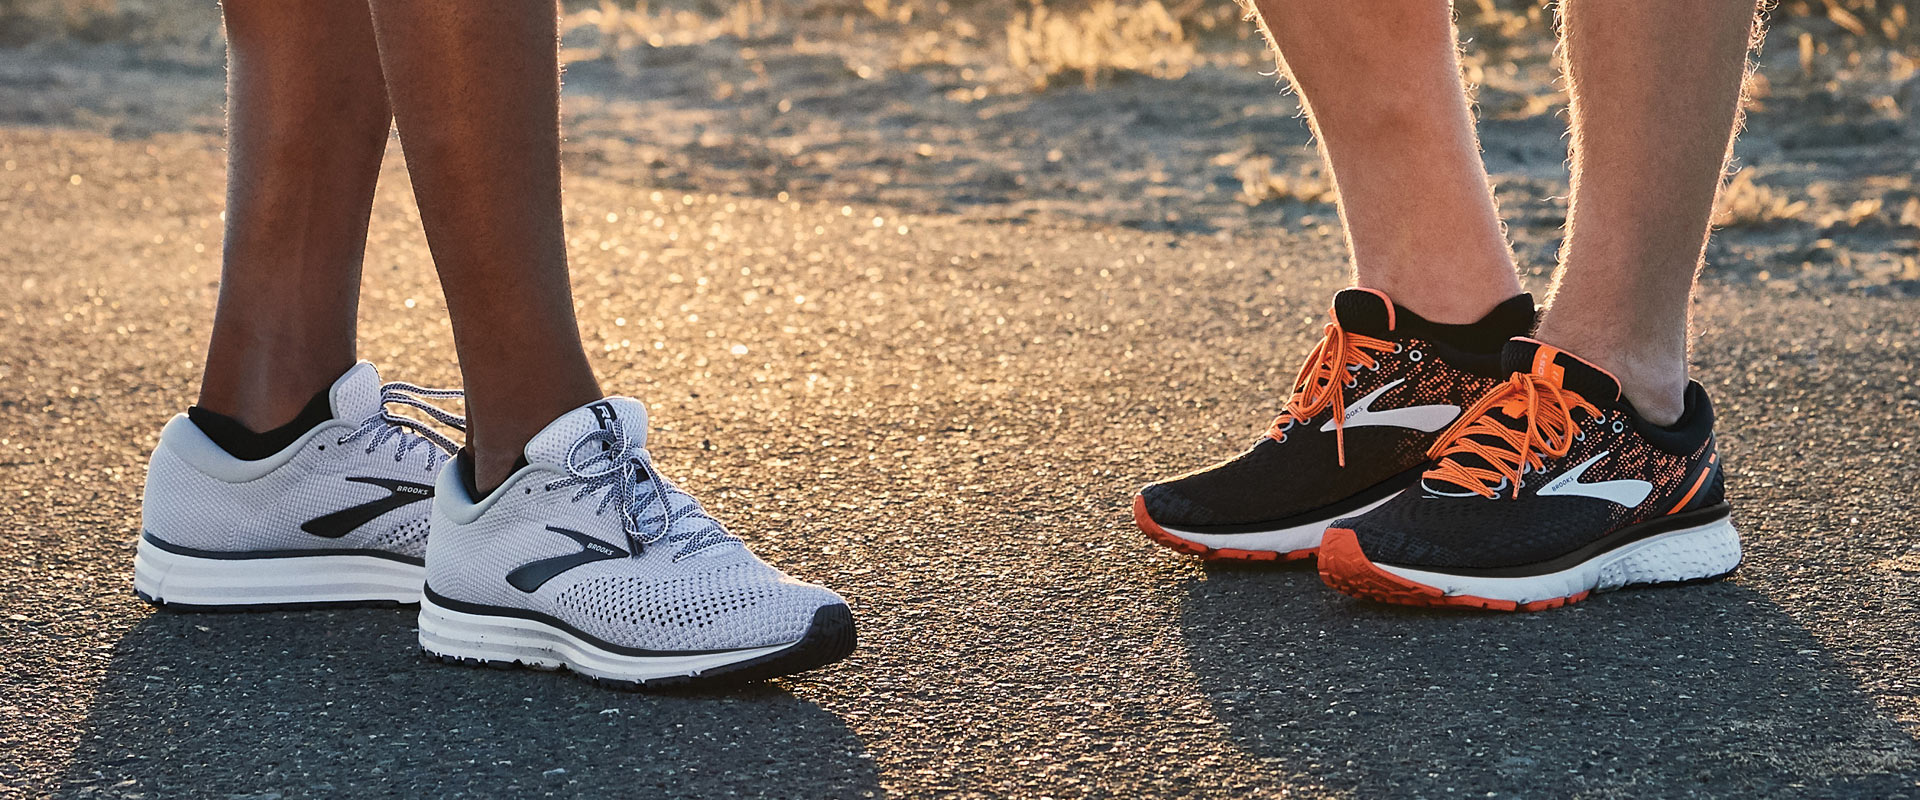 buy online 76580 3393a Welcome to your first and last stop in the search for great running shoes.